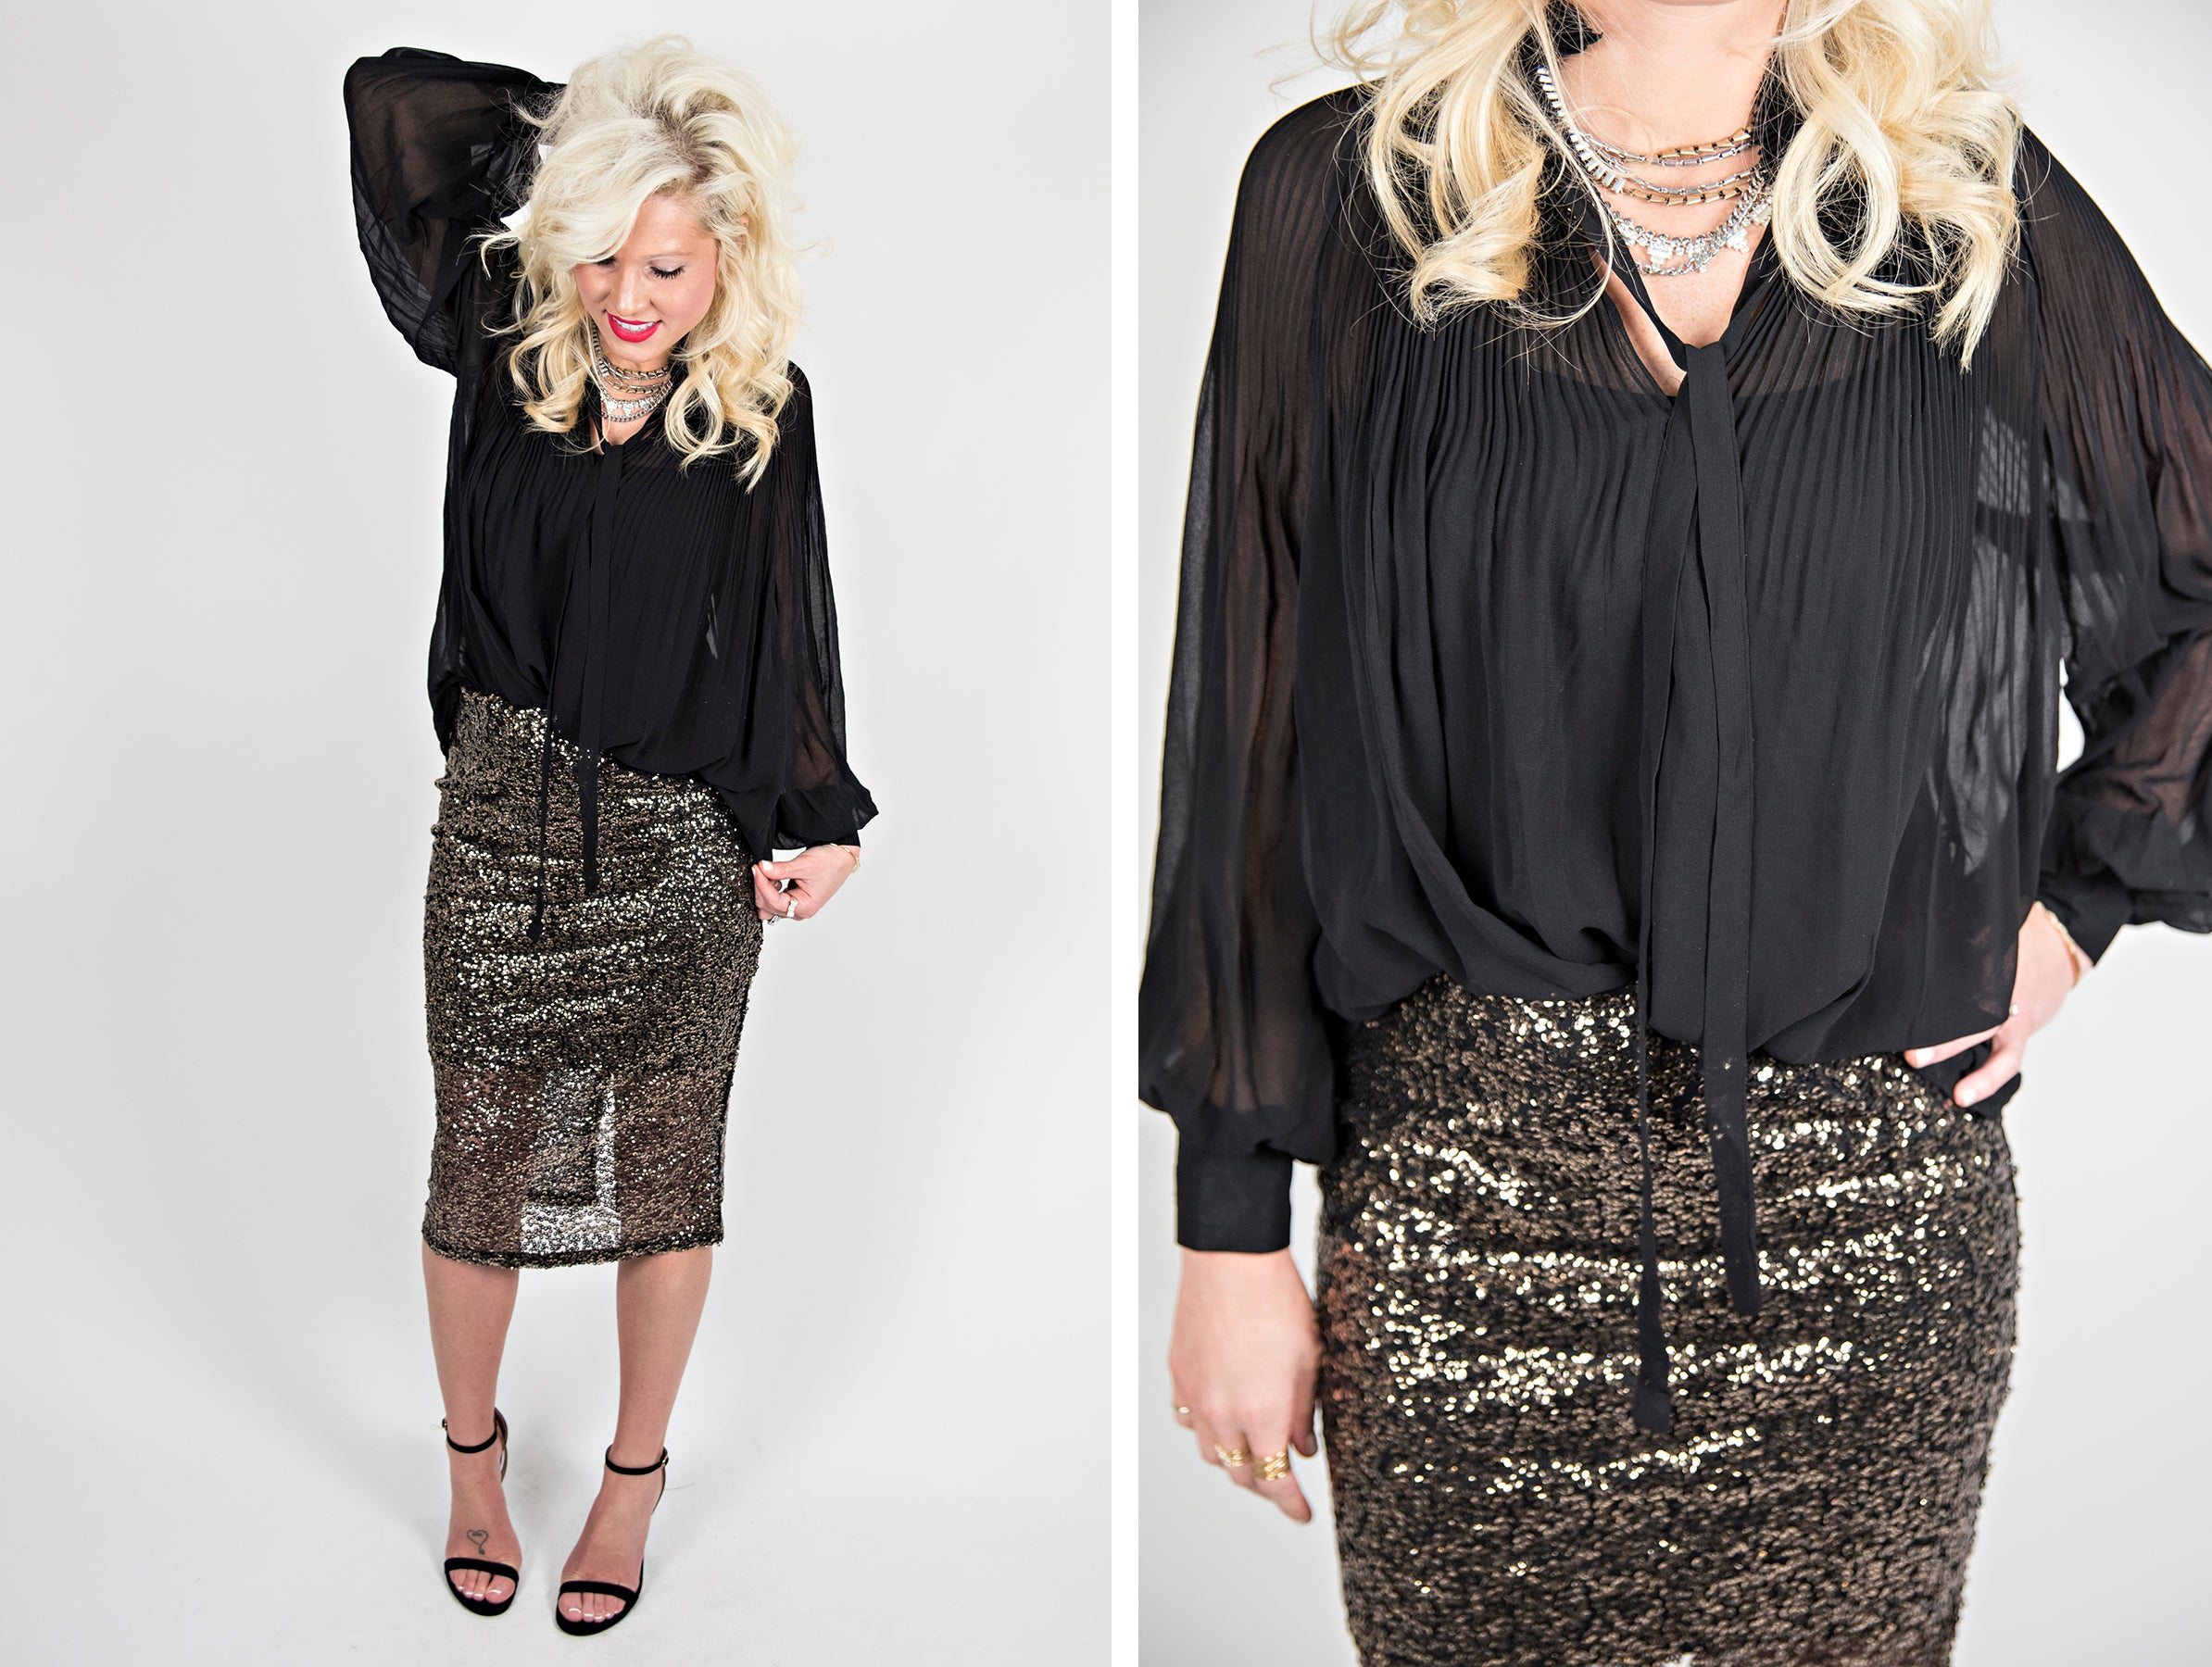 gold sequin pencil skirt and black chiffon blouse with necktie.